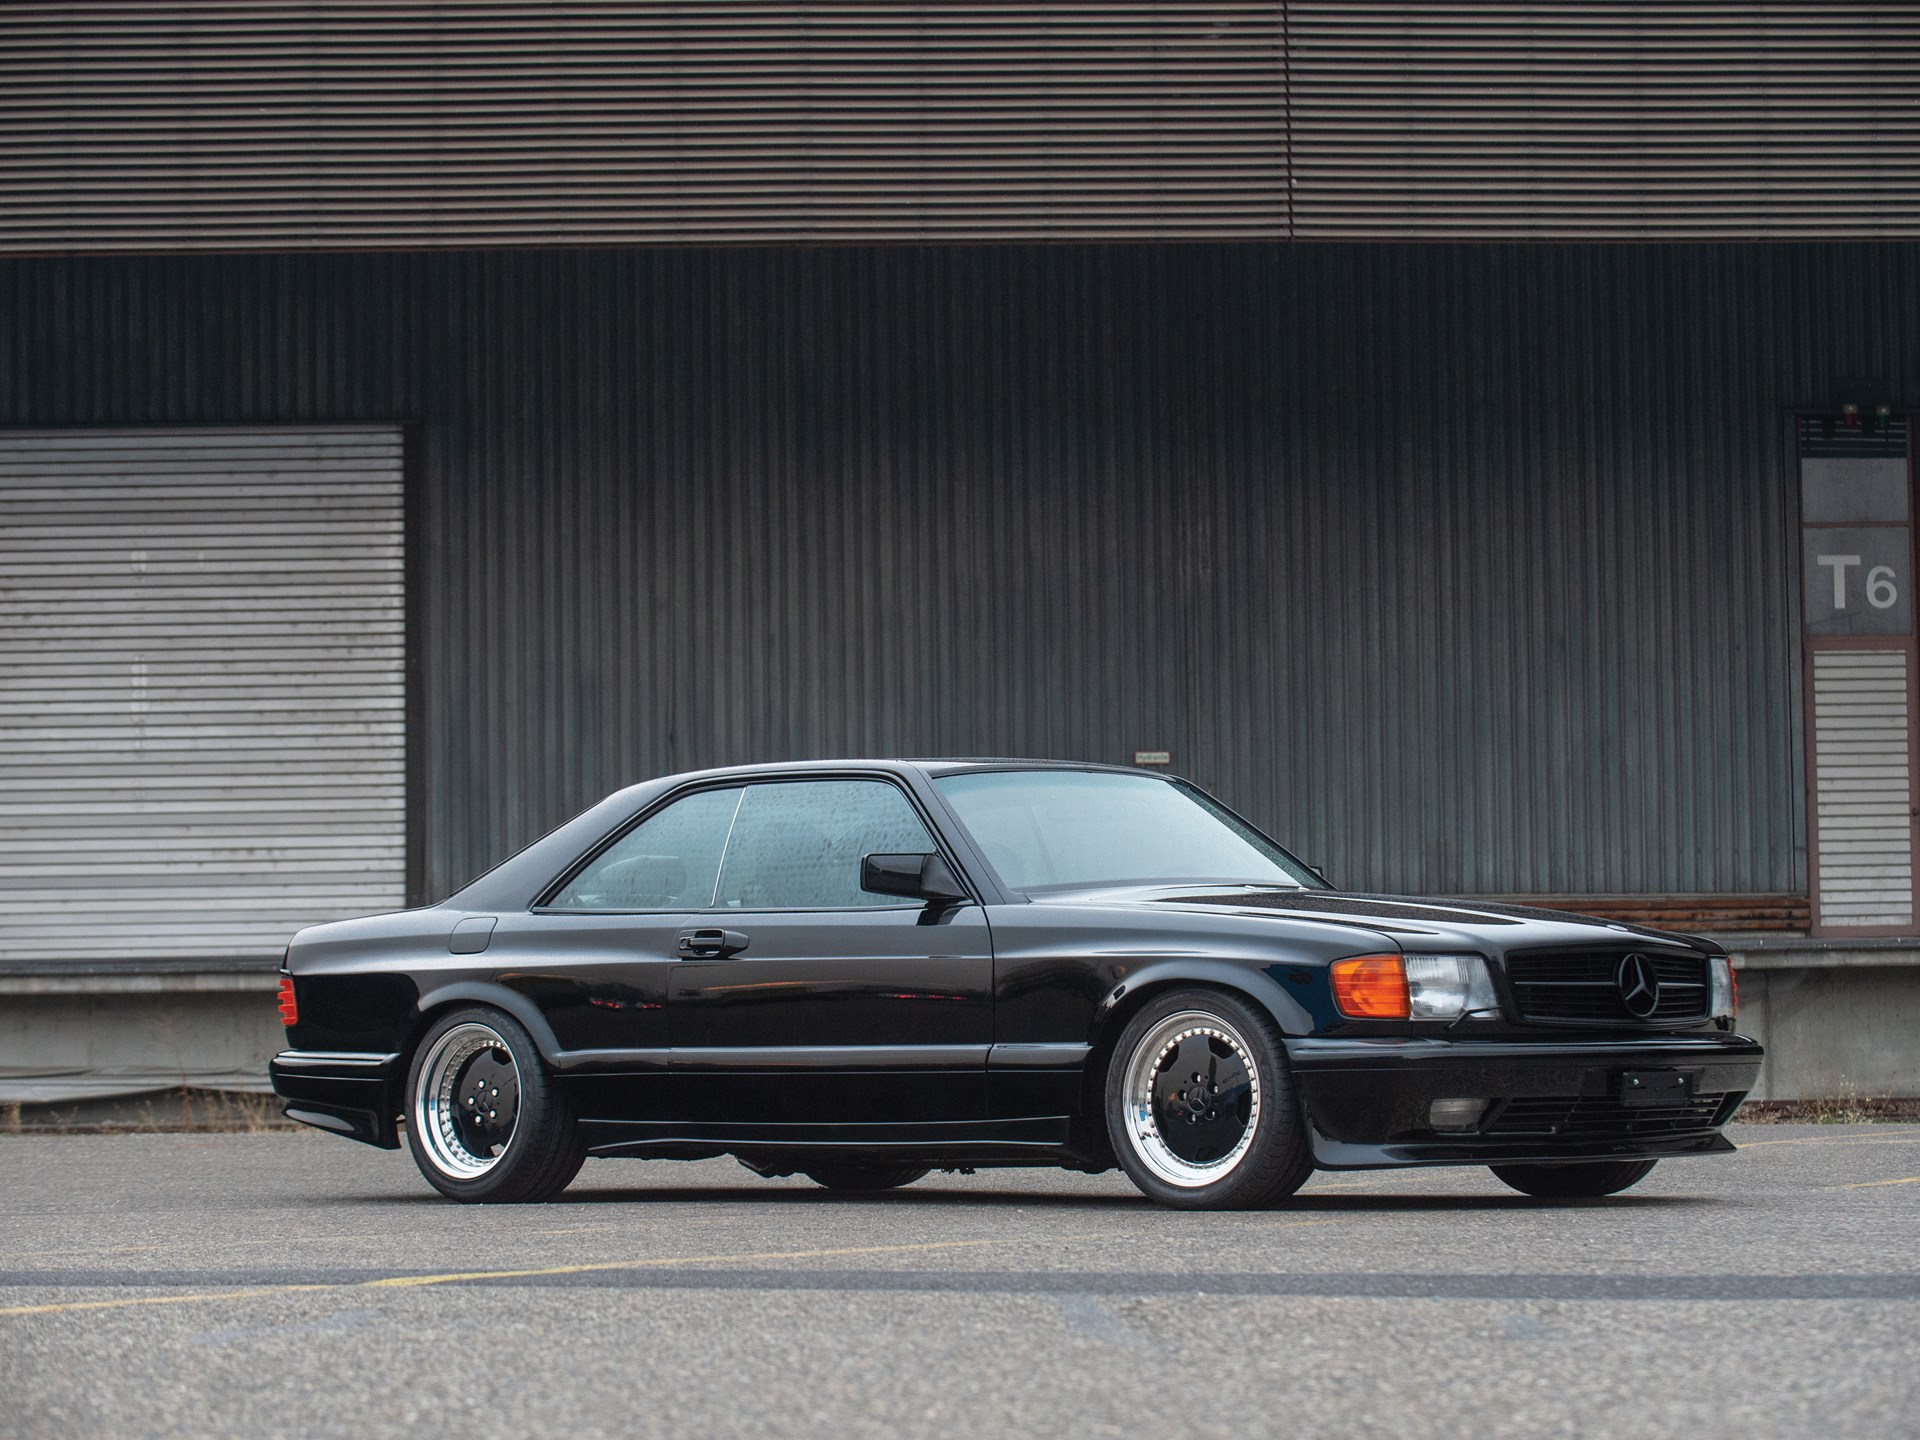 RM Sotheby's - 1984 Mercedes-Benz 500 SEC AMG 5 4 'Wide-Body